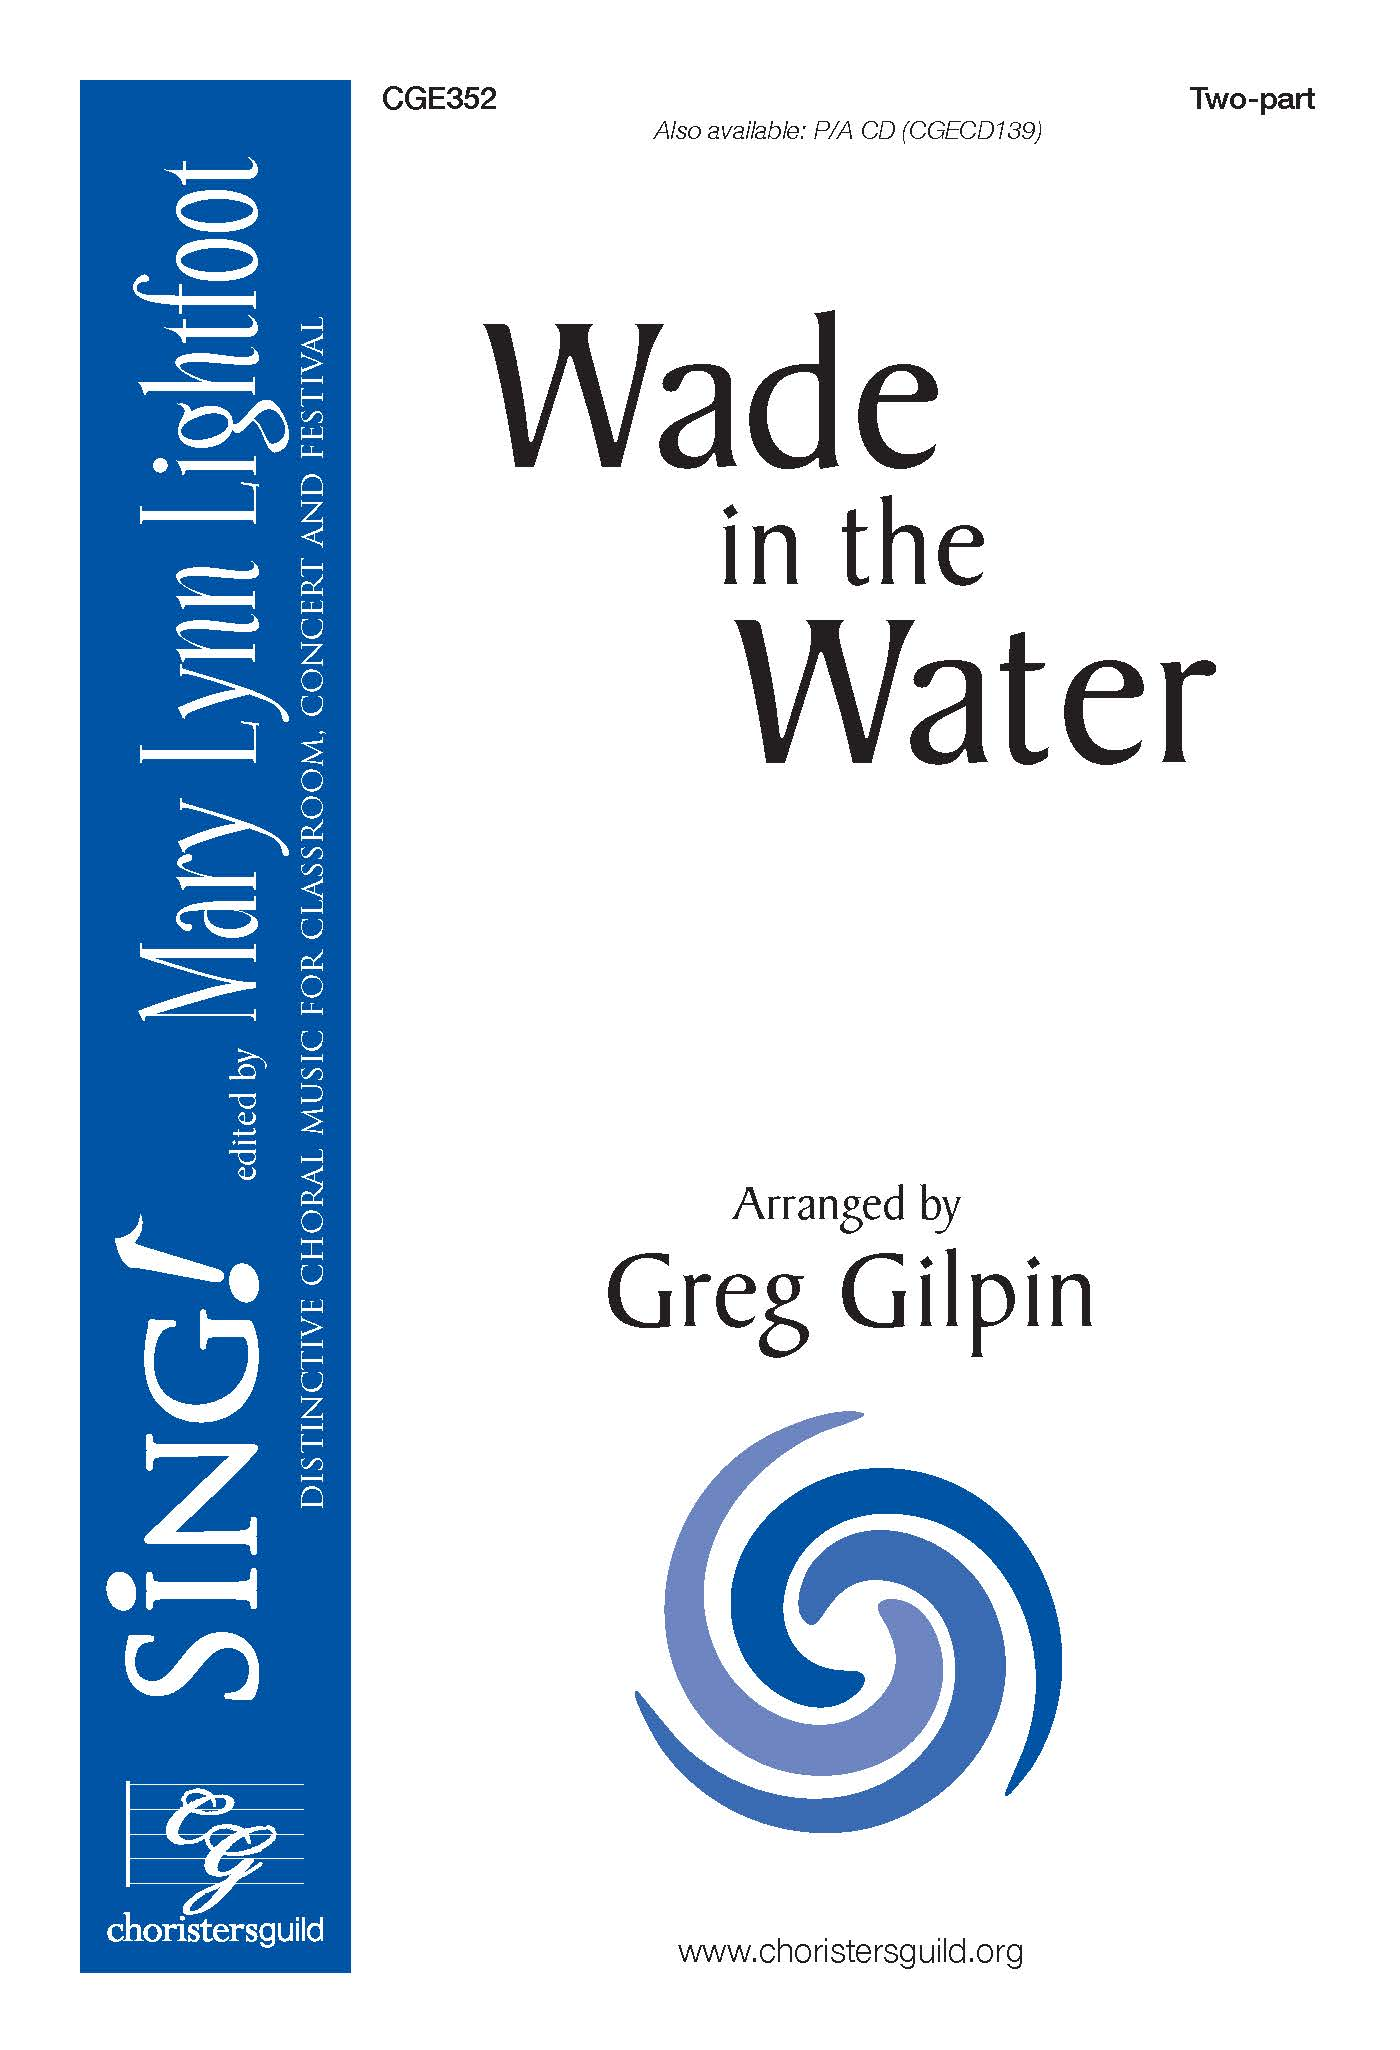 Wade in the Water - Two-part